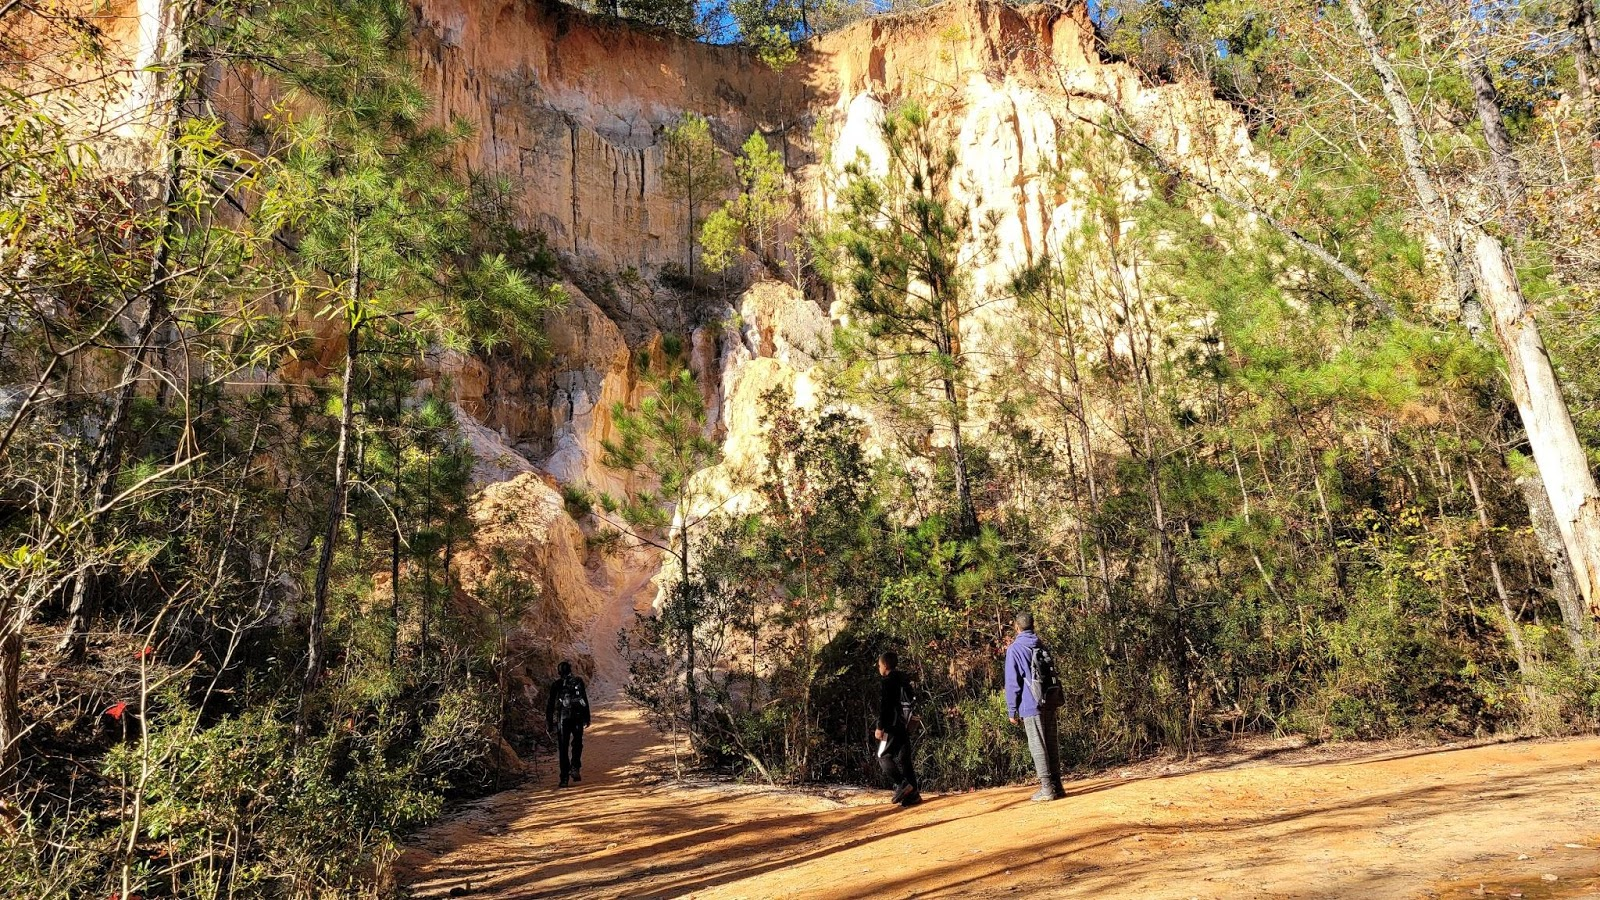 Three young boys stand on a hiking trail and look up towards a cliff.